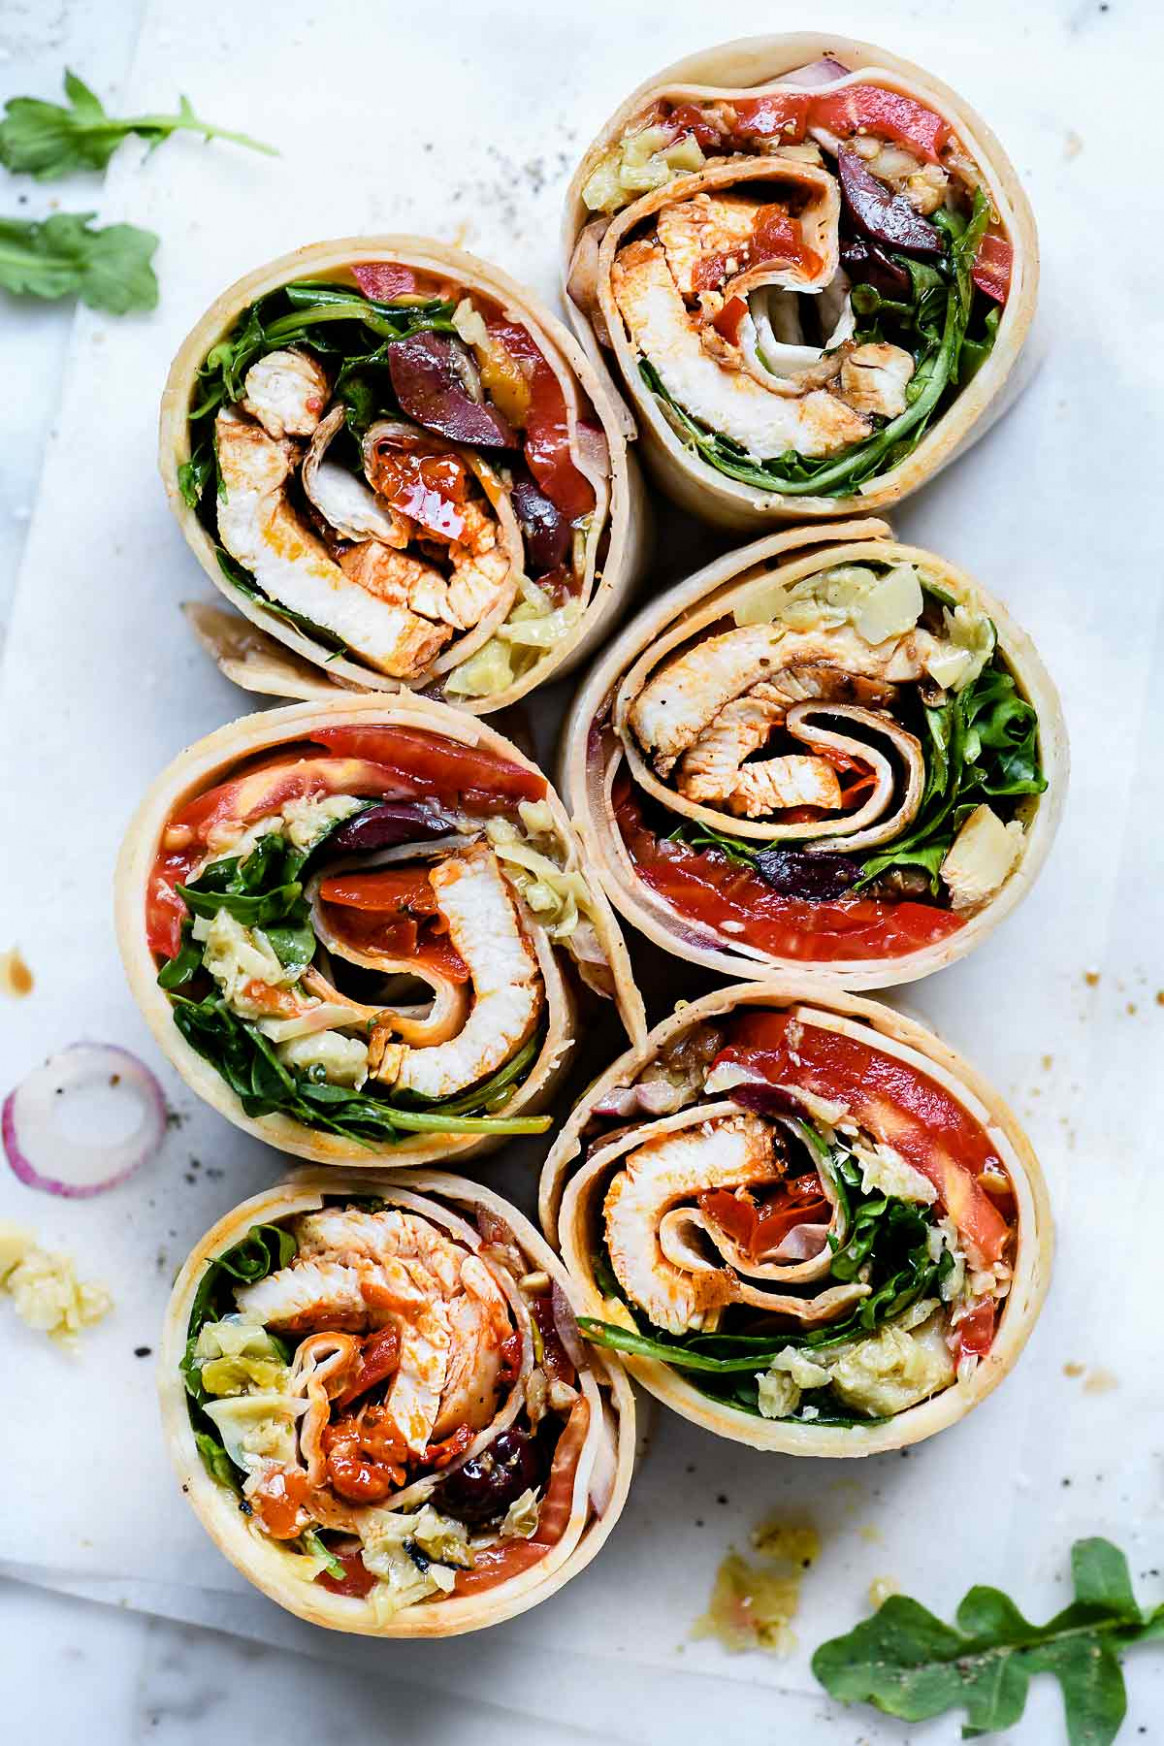 Italian Chicken Wrap - wrap recipes vegetarian